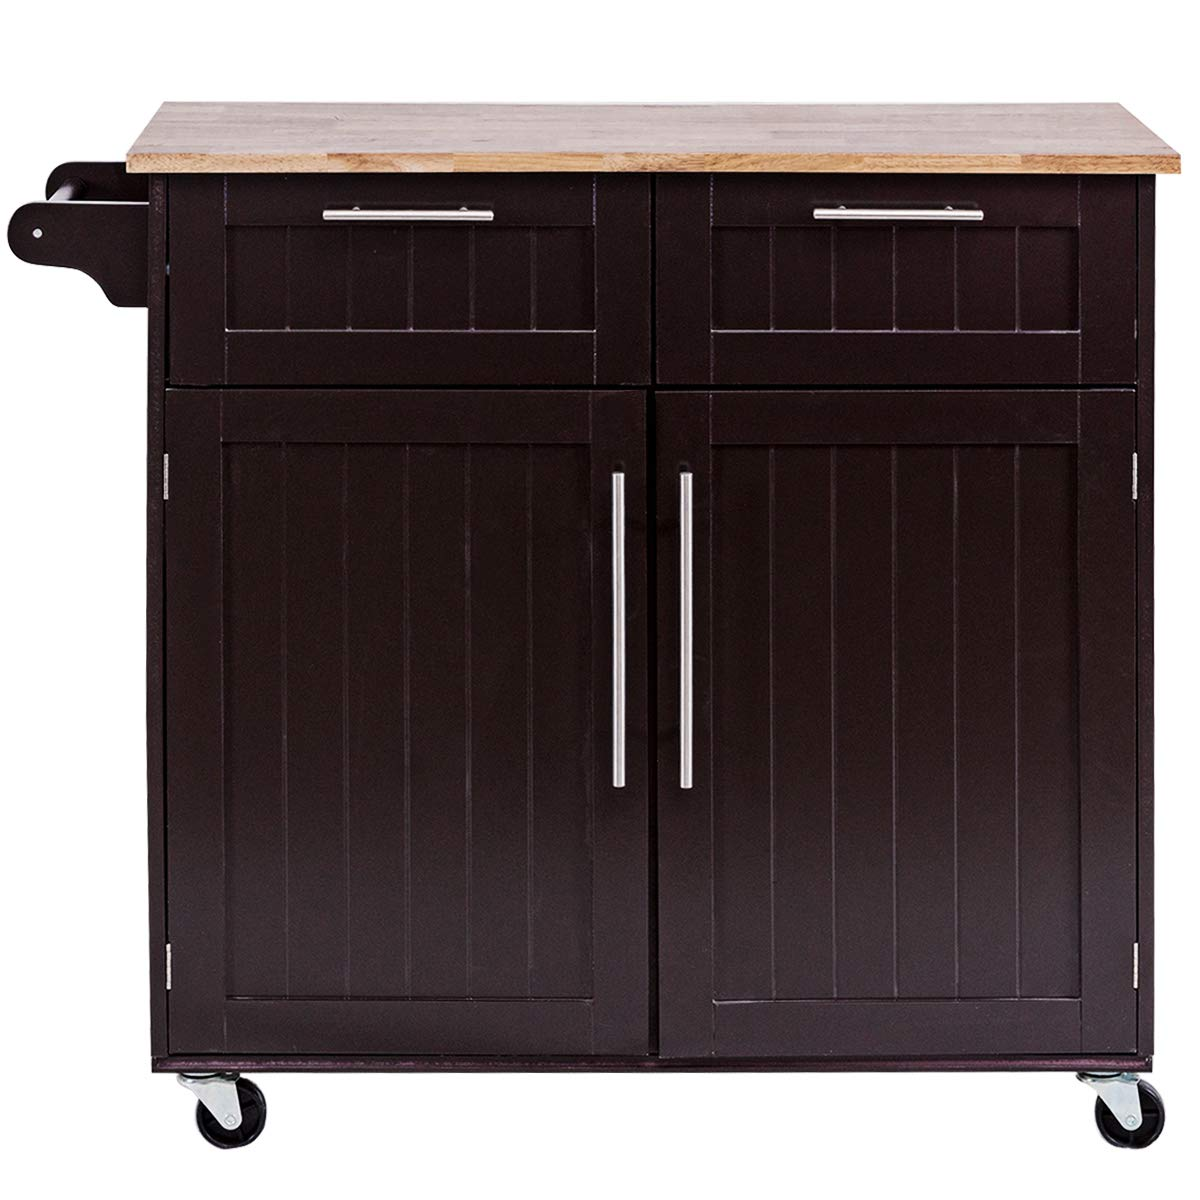 Giantex Kitchen Island Cart Rolling Storage Trolley Cart Home and Restaurant Serving Utility Cart with Drawers,Cabinet, Towel Rack and Wood Top by Giantex (Image #6)